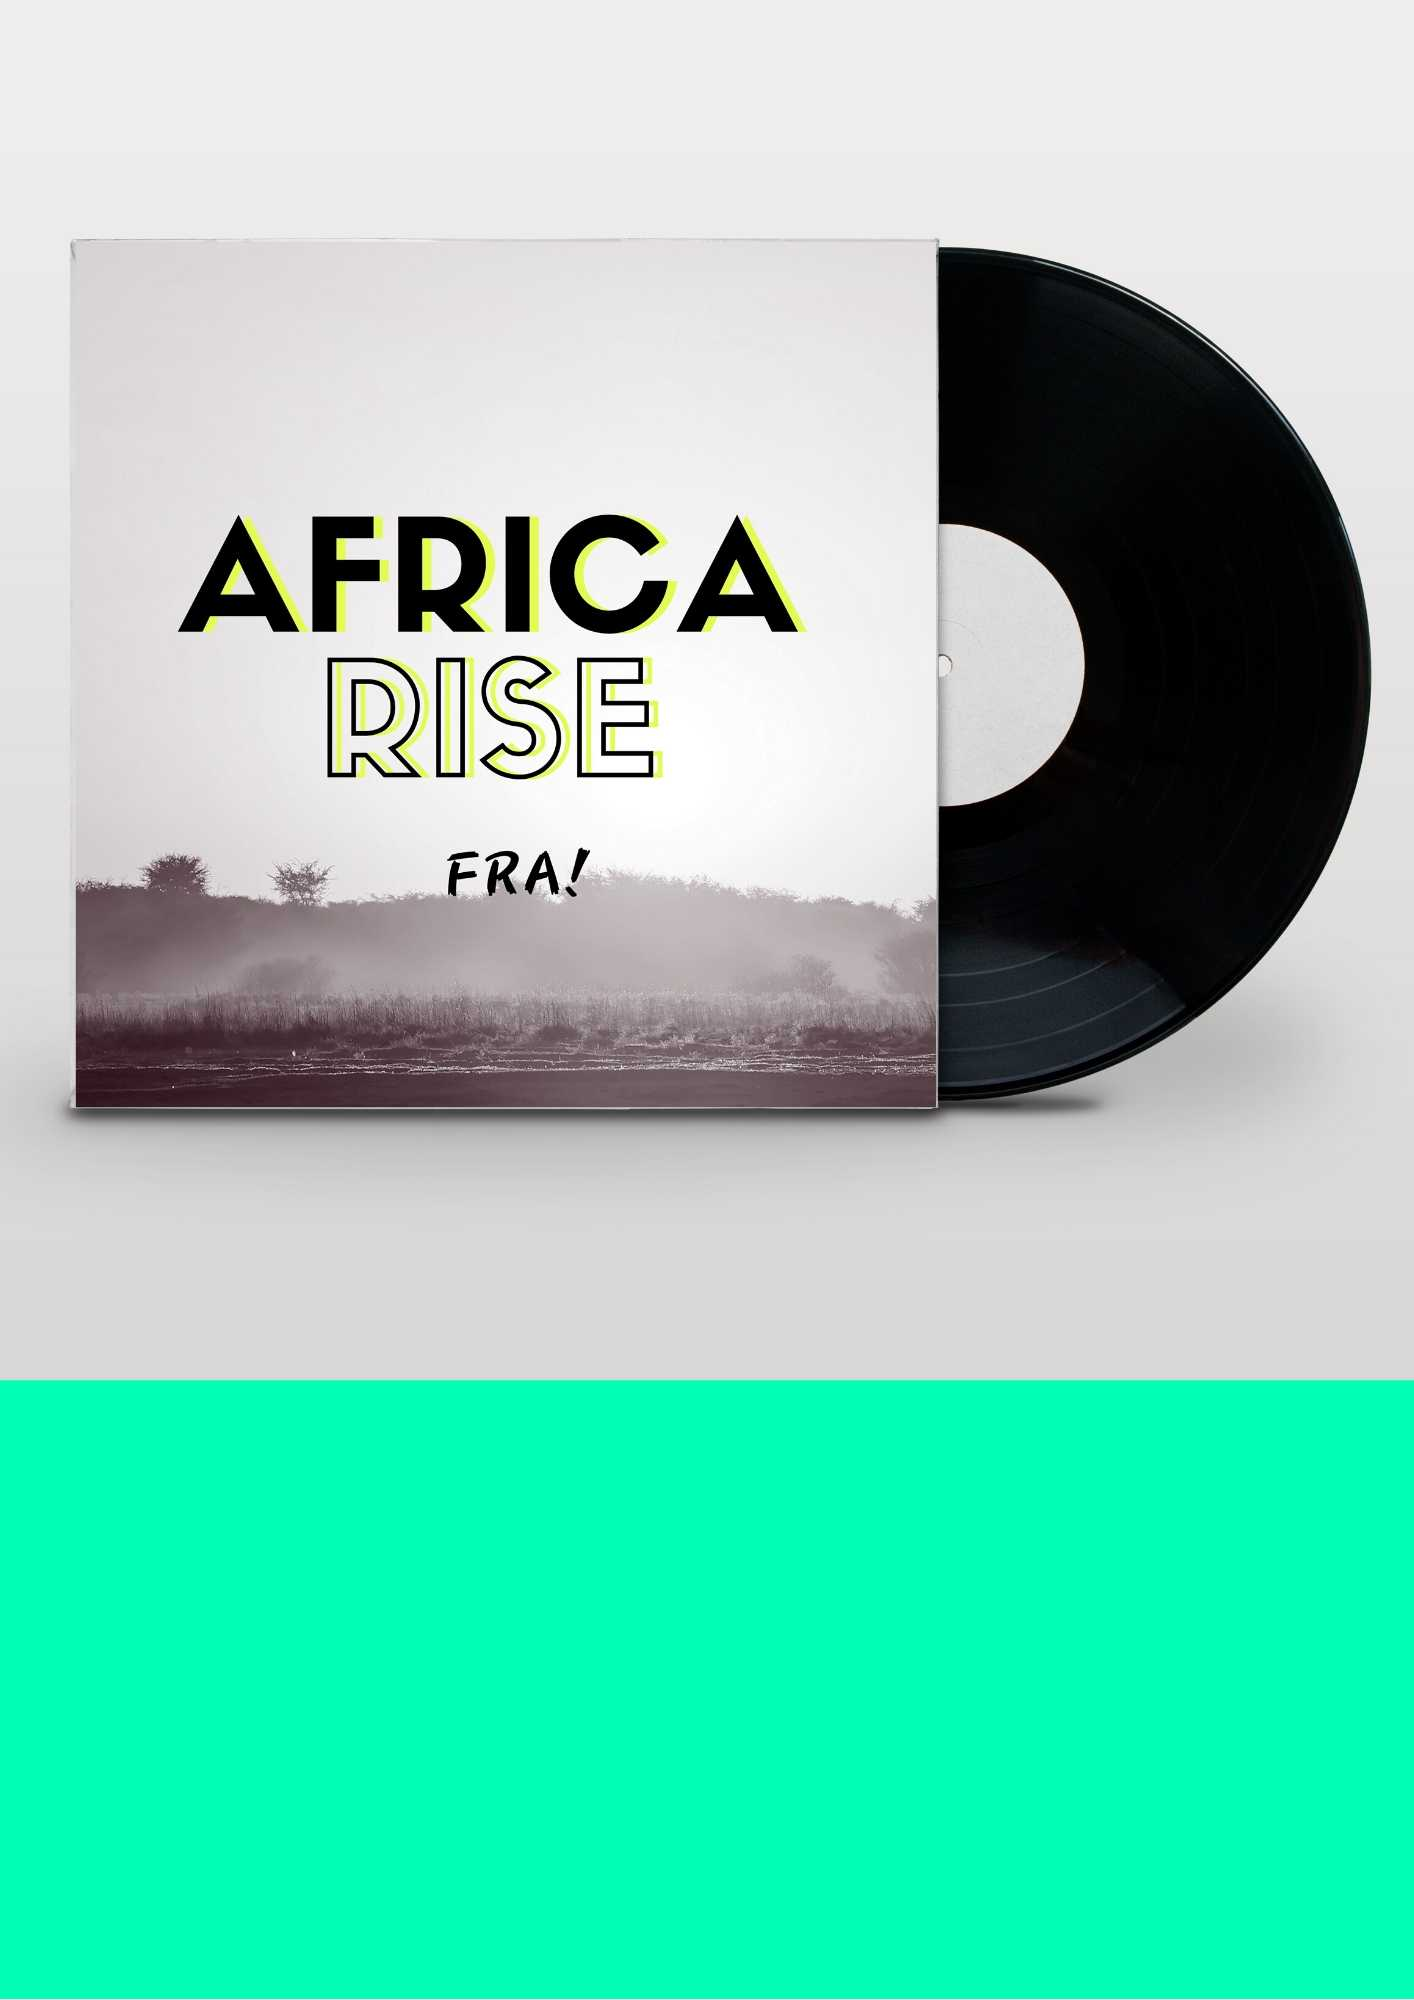 AFRICA RISE by FRA! for #SOULIDARITY